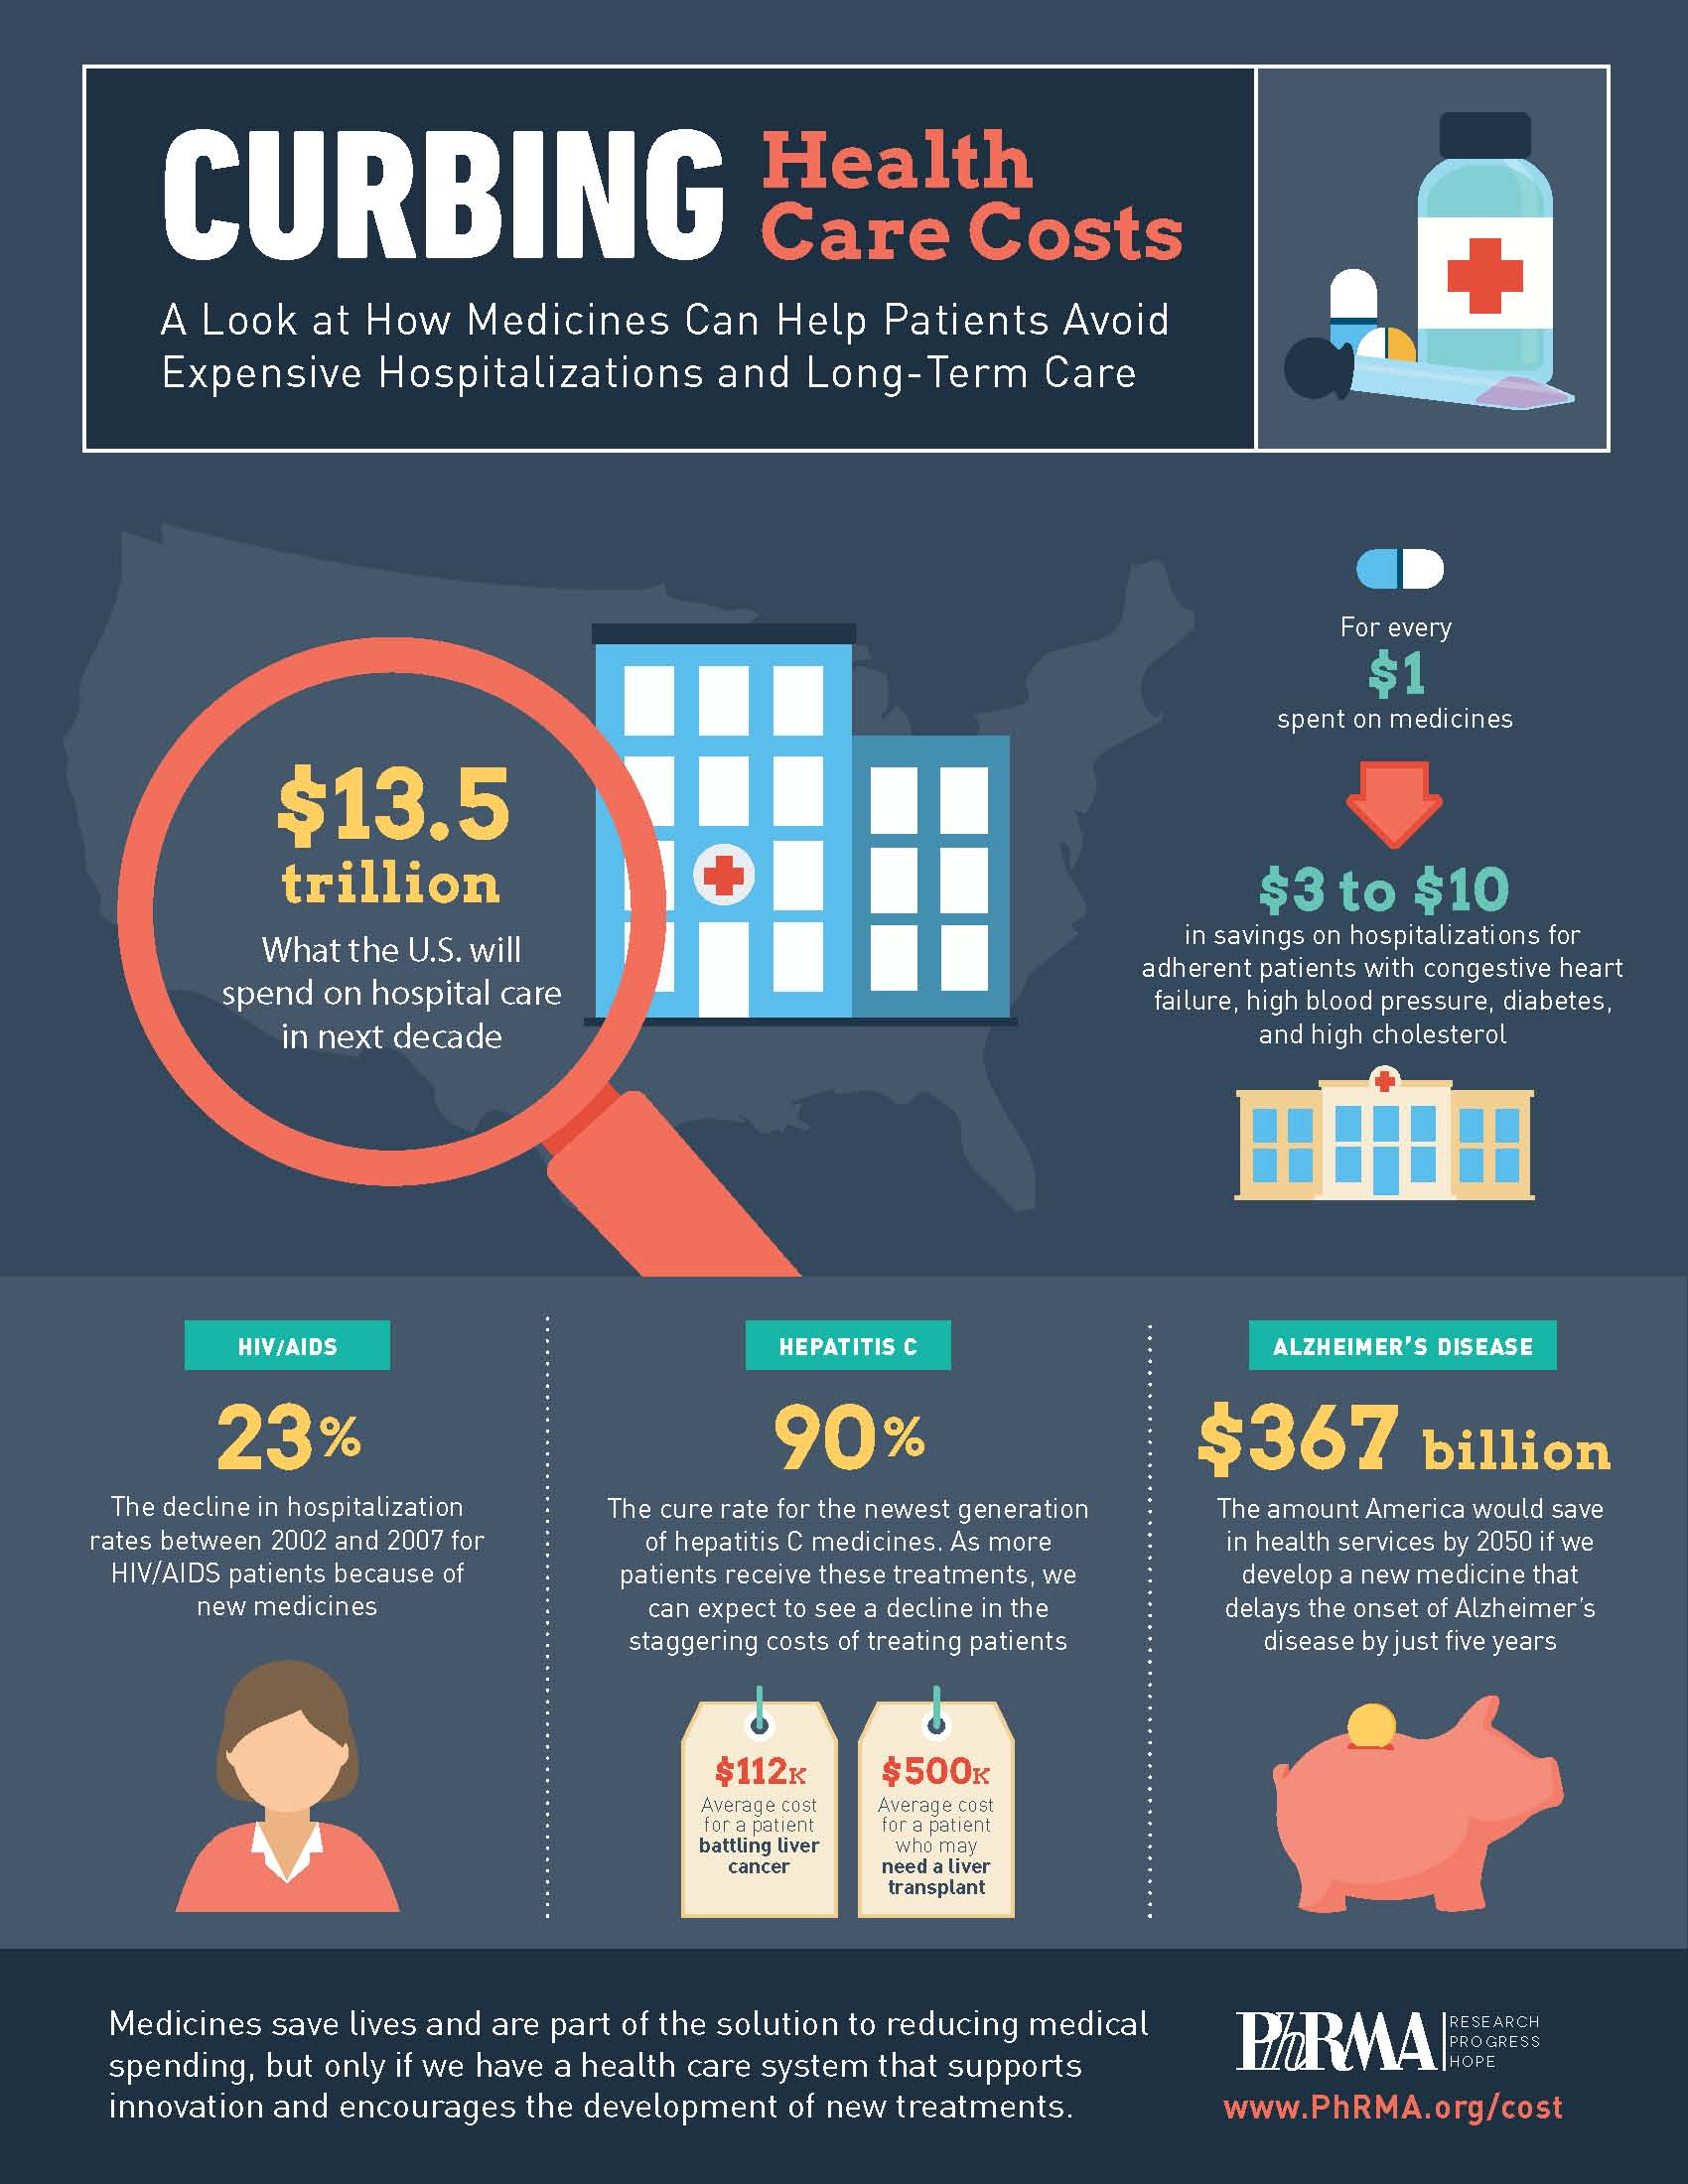 Curbing_Health_Care_Costs_Infographic